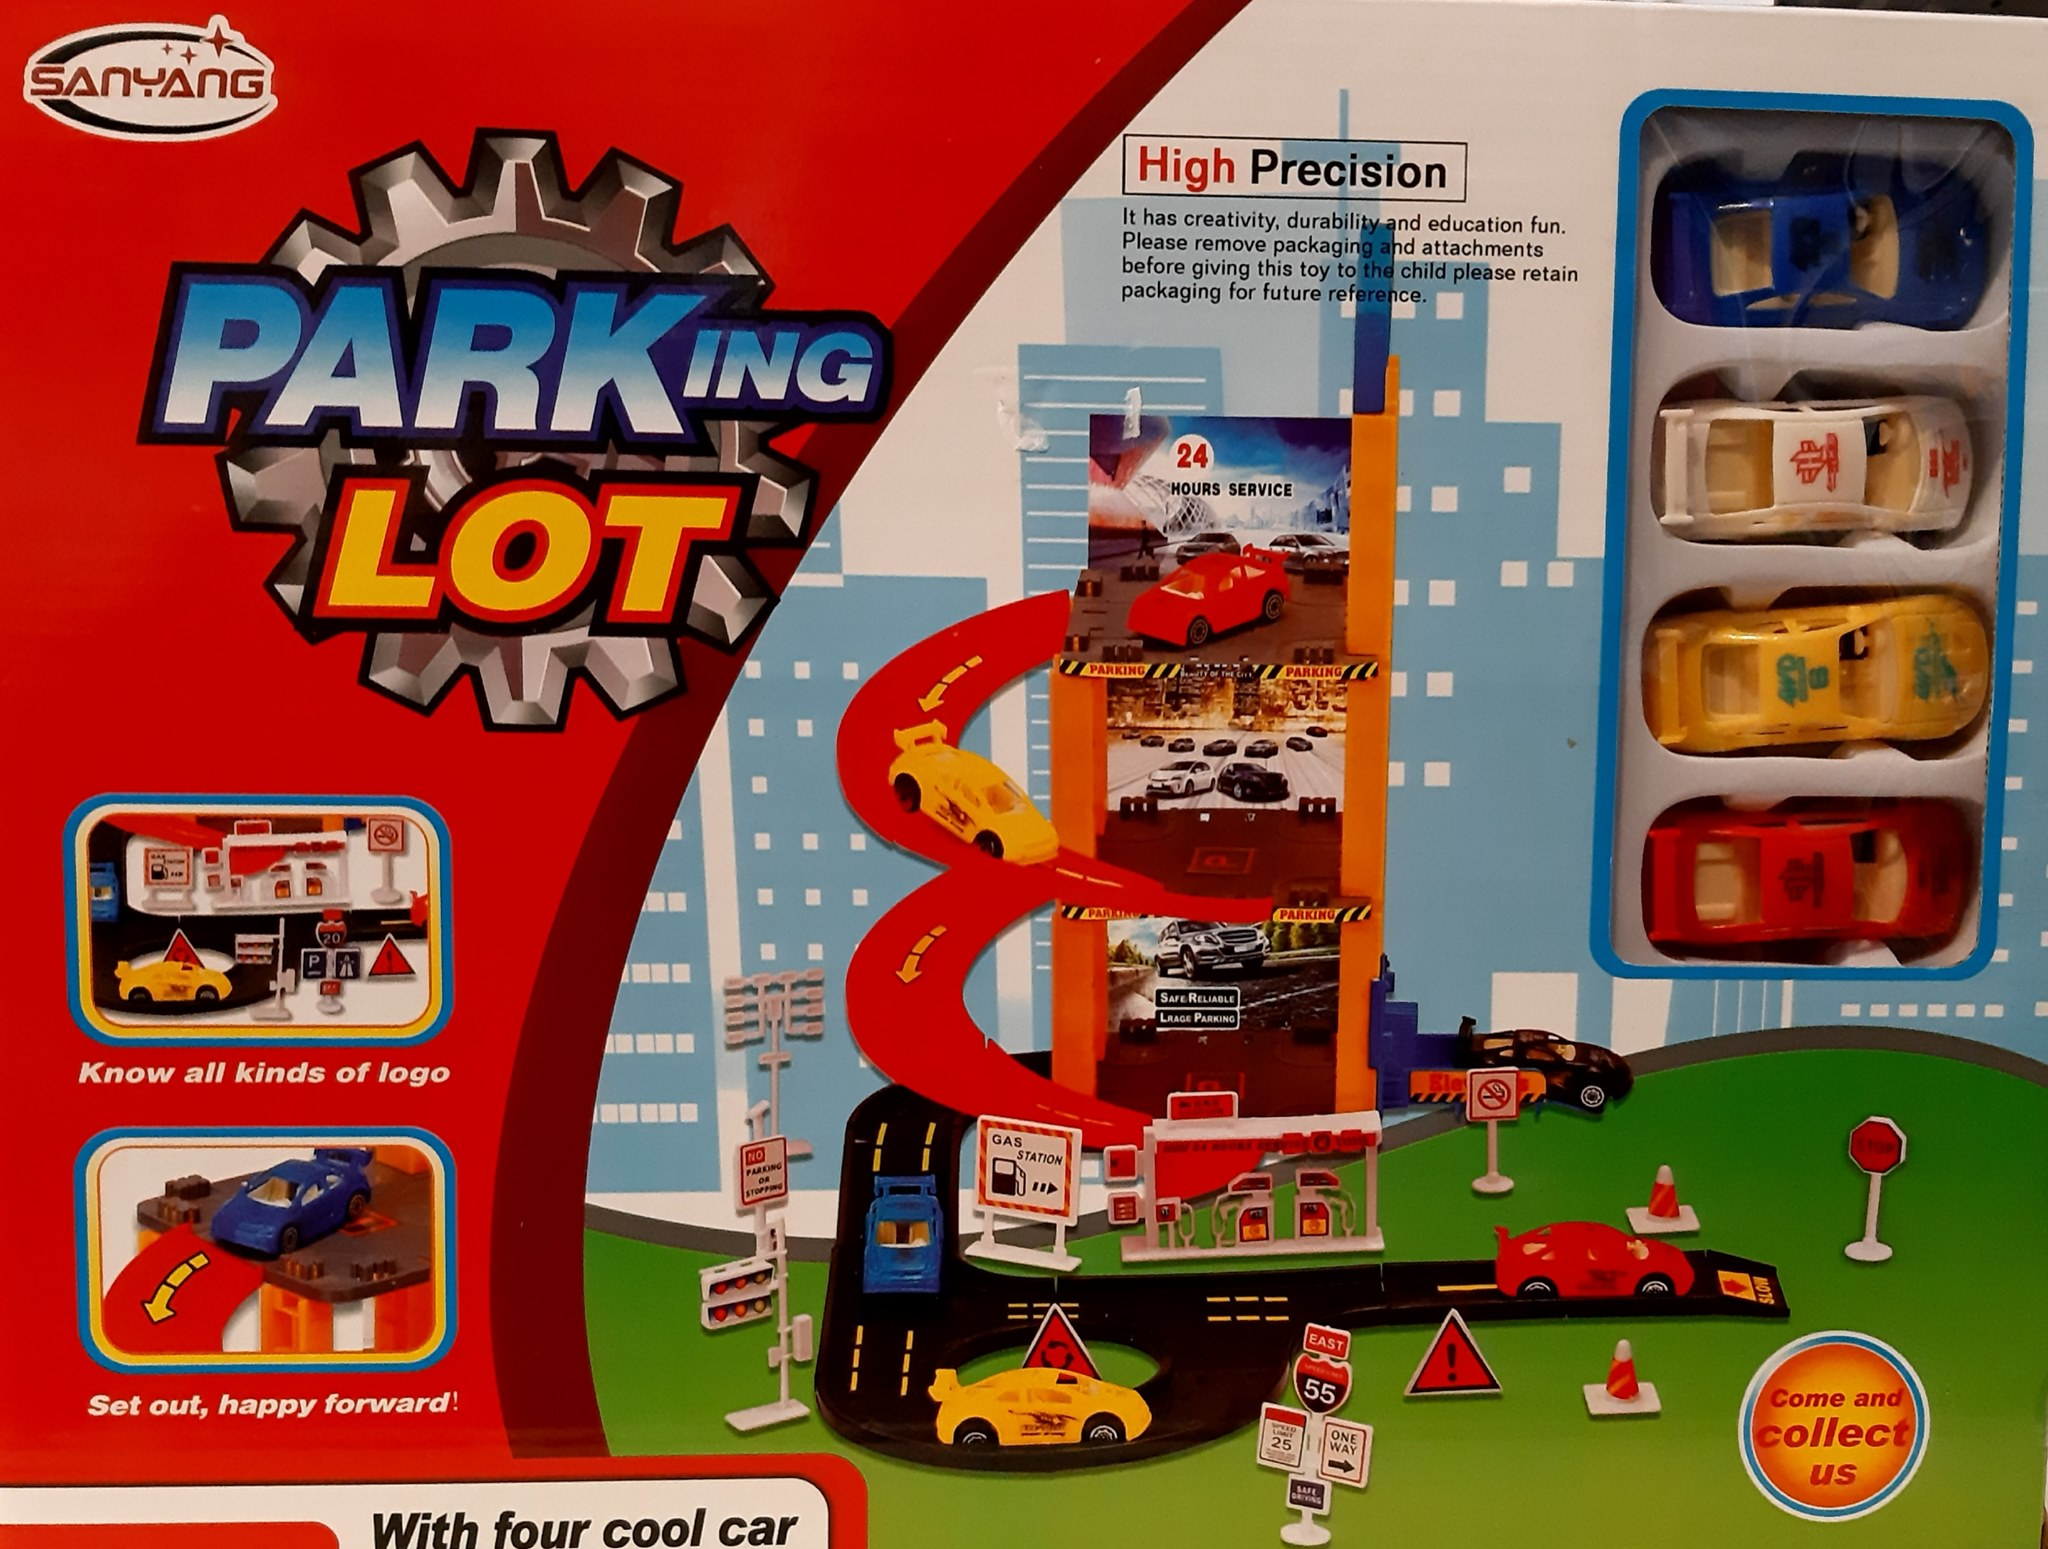 24 HOUR SERVICE PARKING LOT FOR CARS 309083